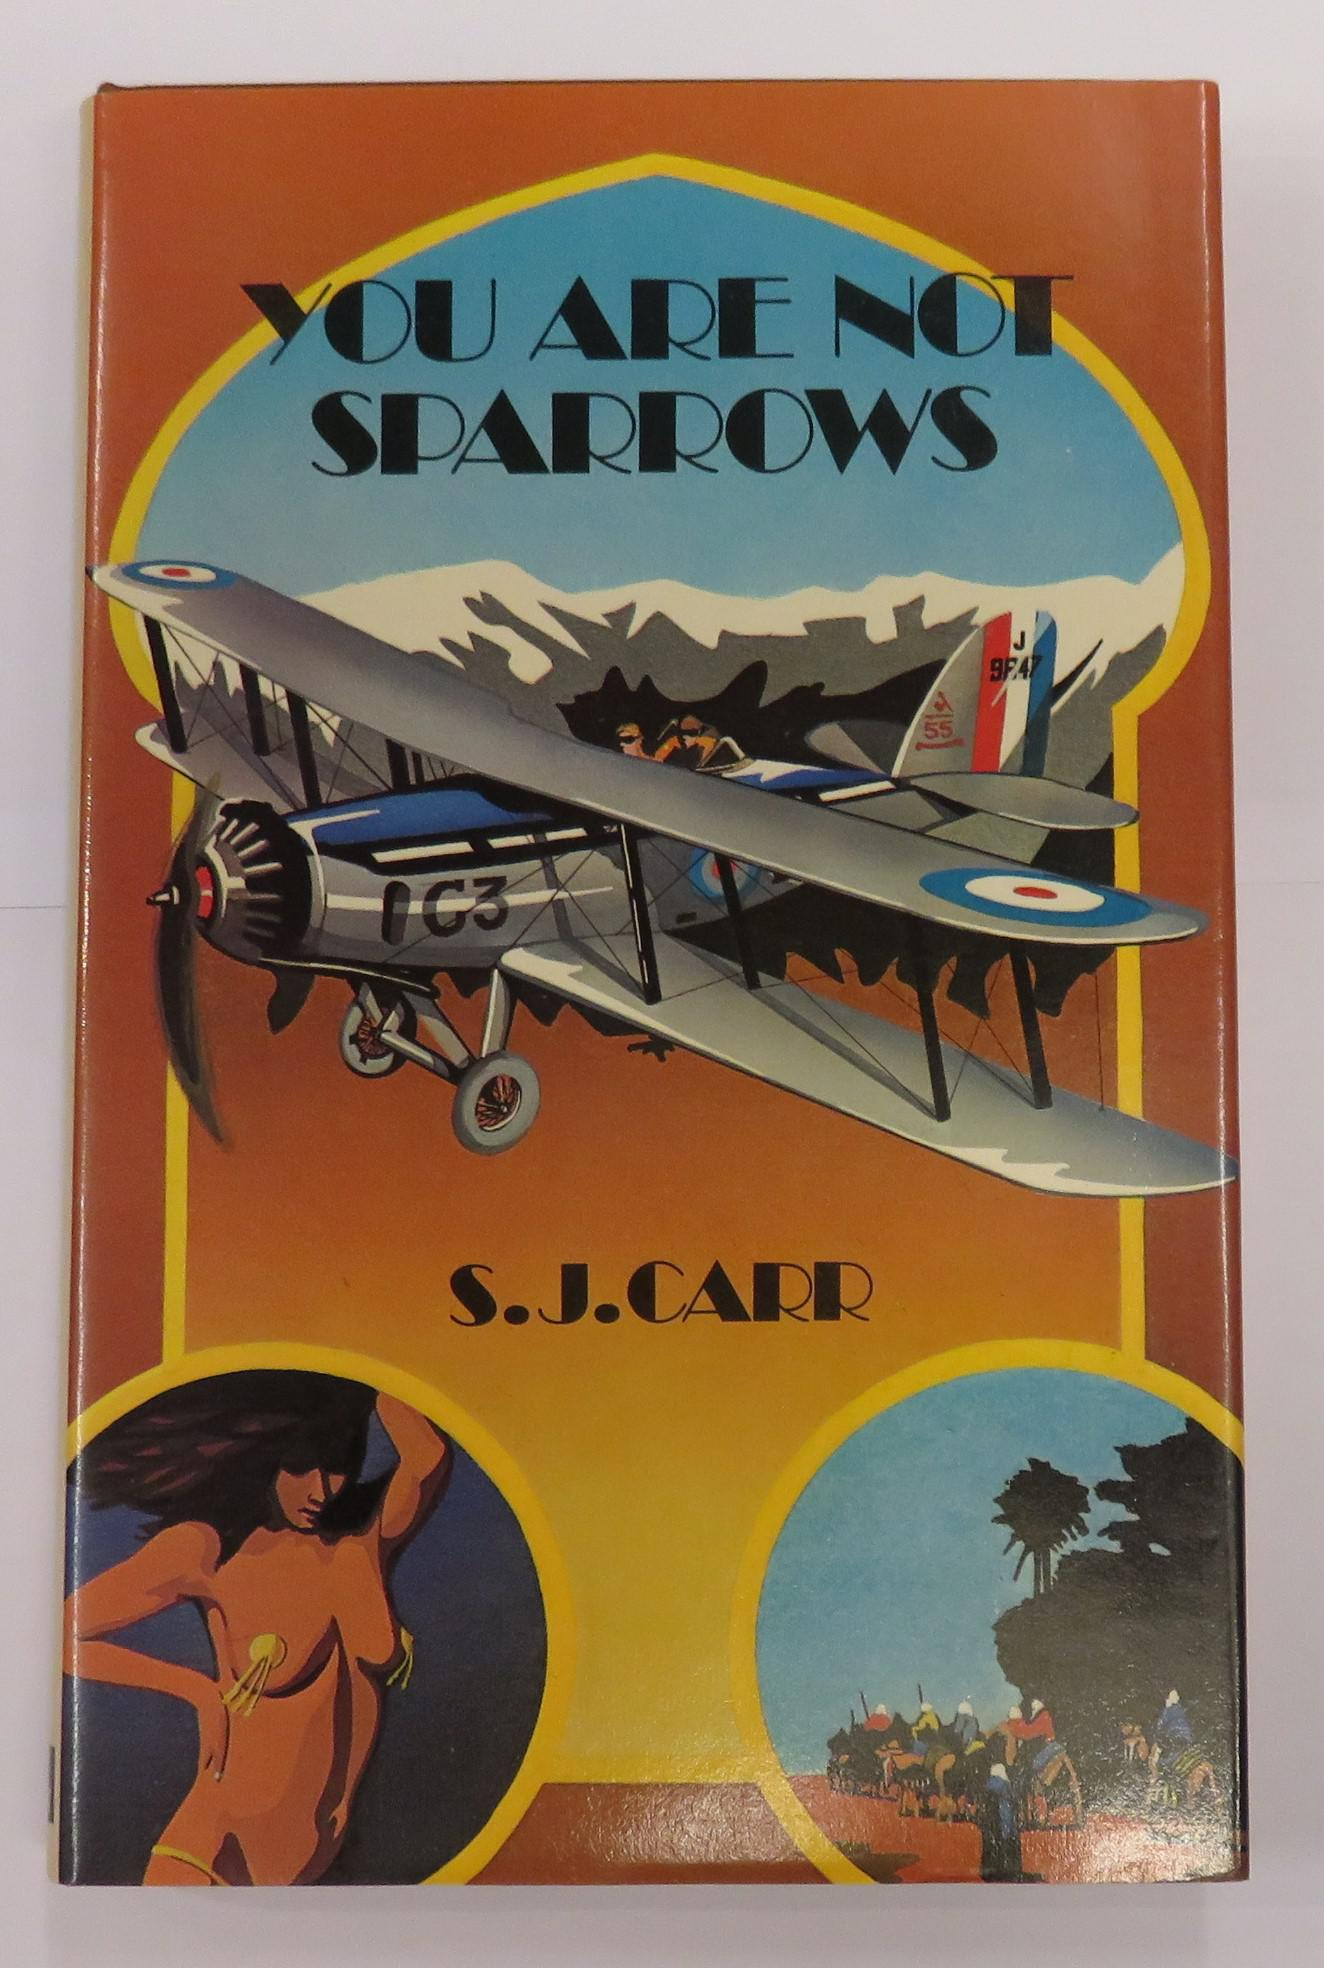 You Are Not Sparrows A light hearted account of flying between the wars